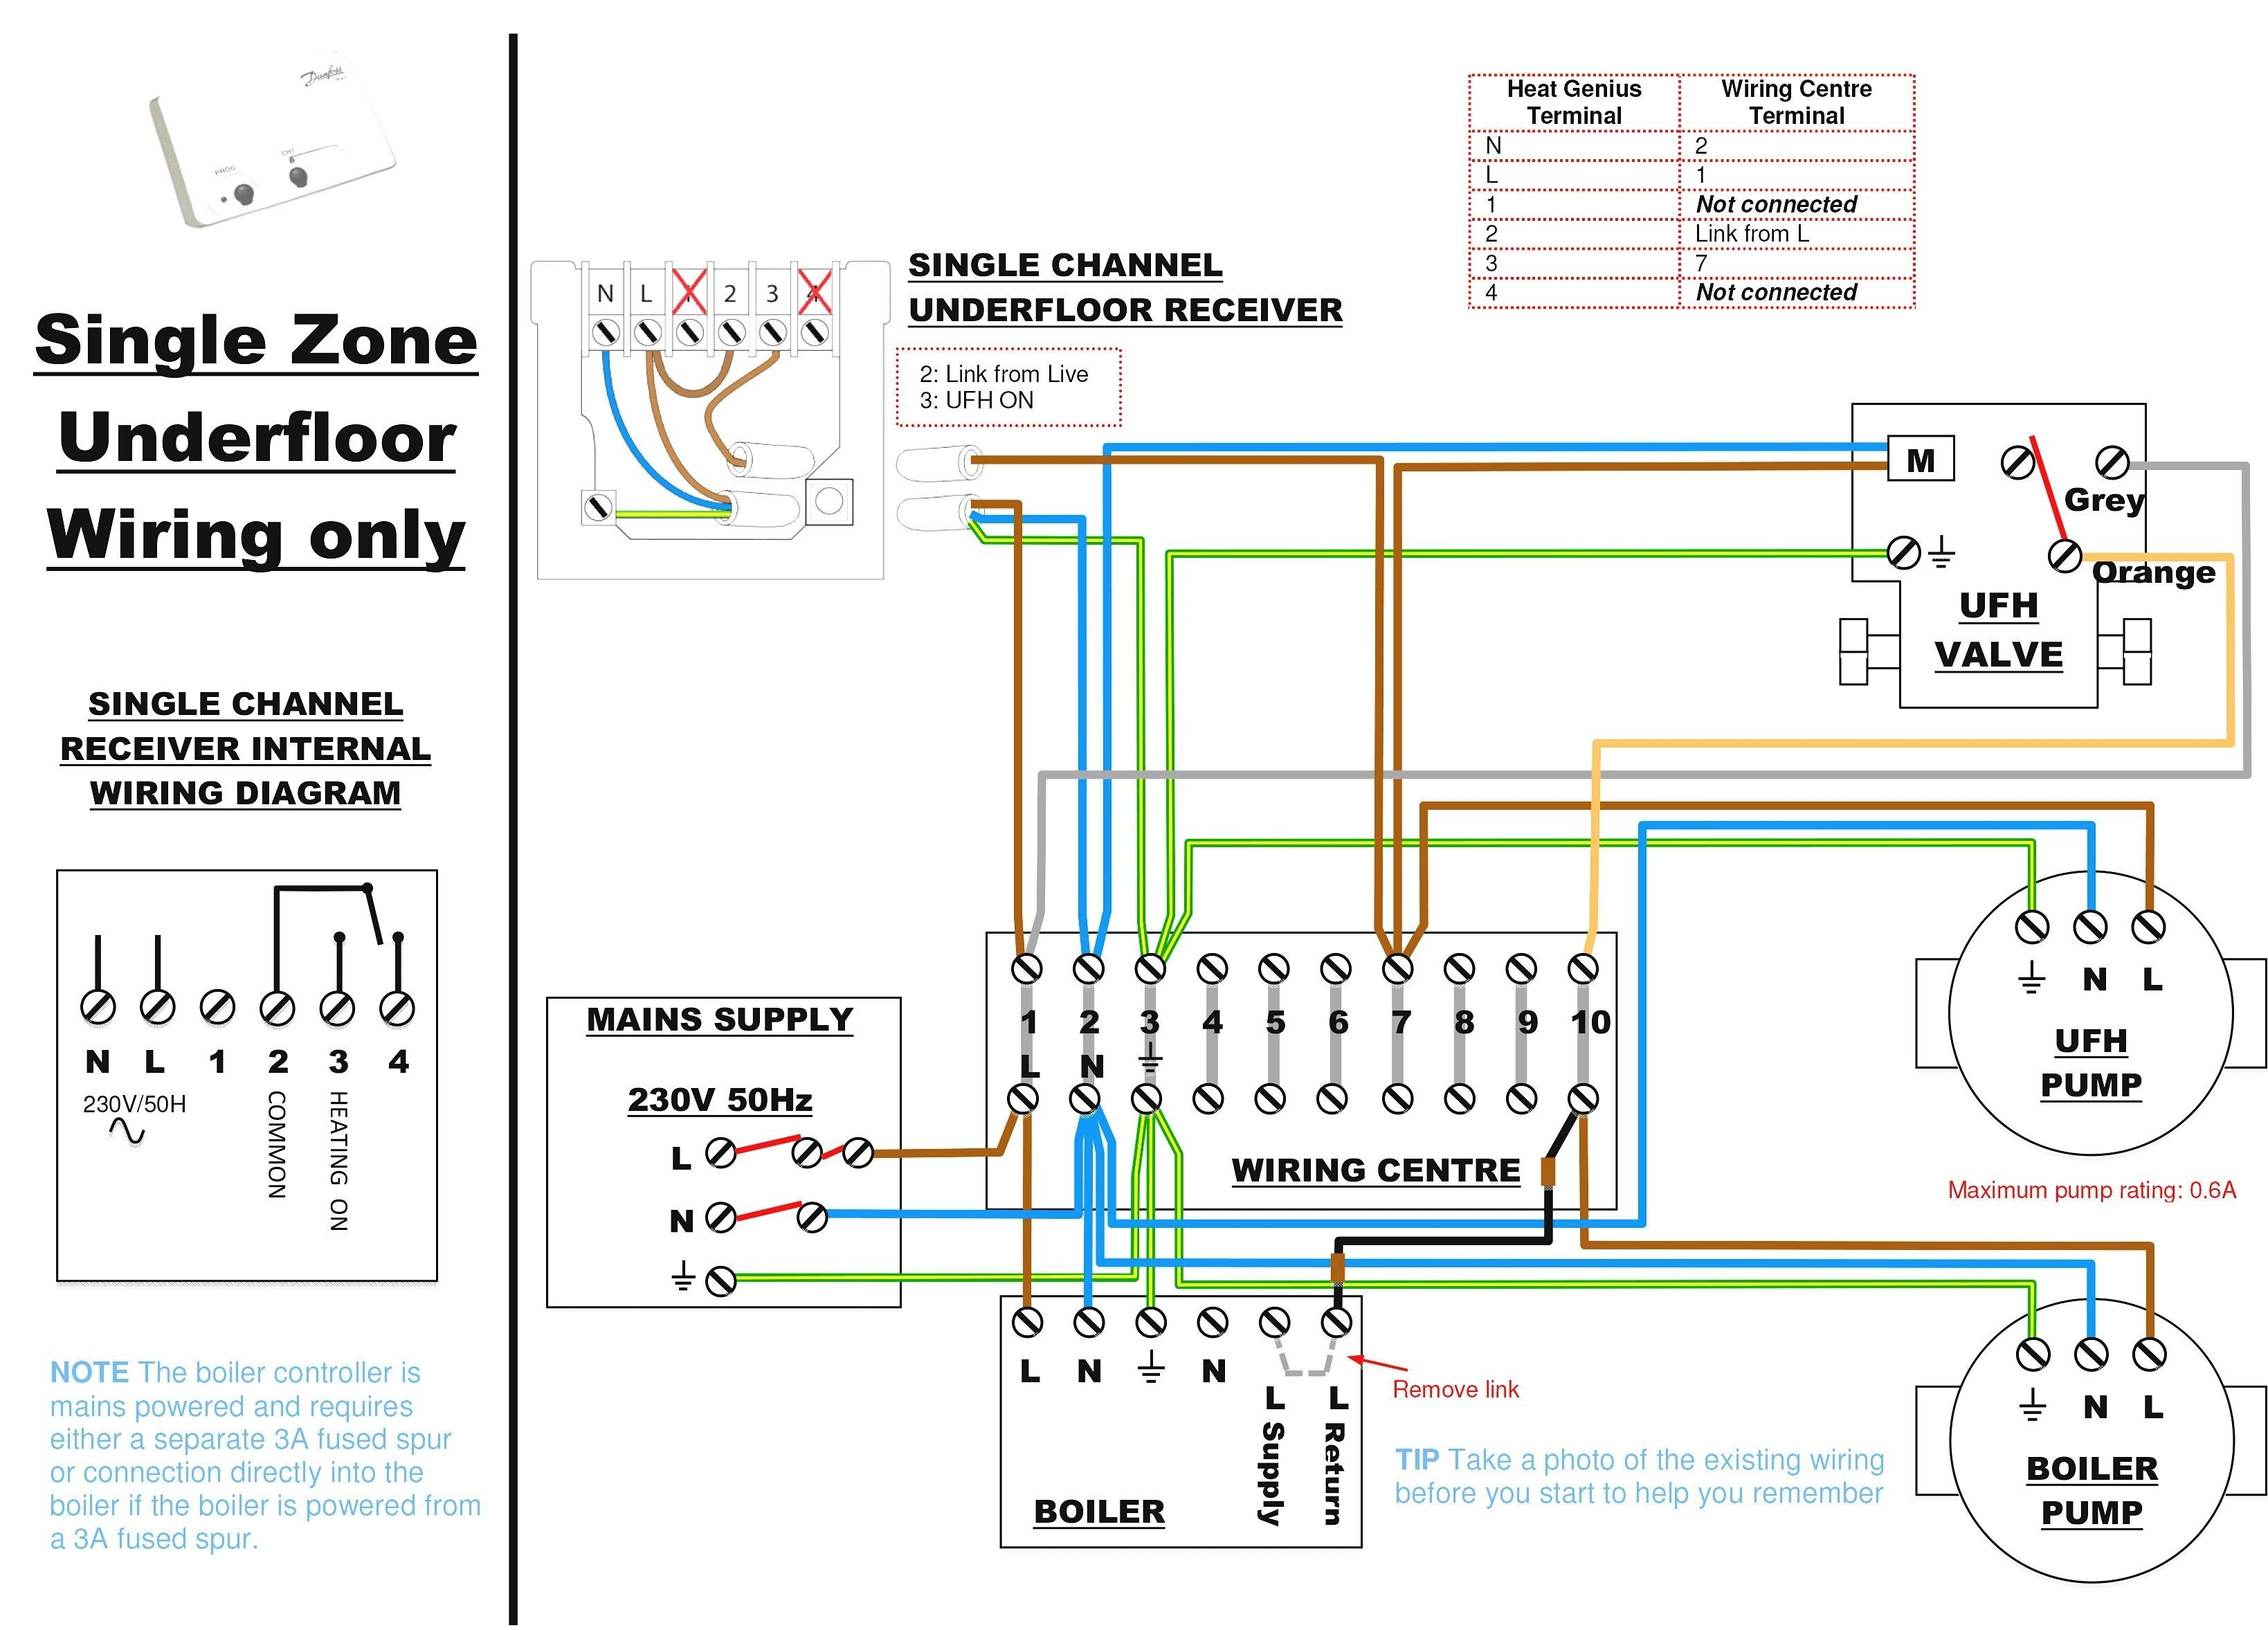 underfloor heating wiring diagram combi boiler home wiring diagram underfloor heating wiring diagram combi boiler [ 3277 x 2355 Pixel ]